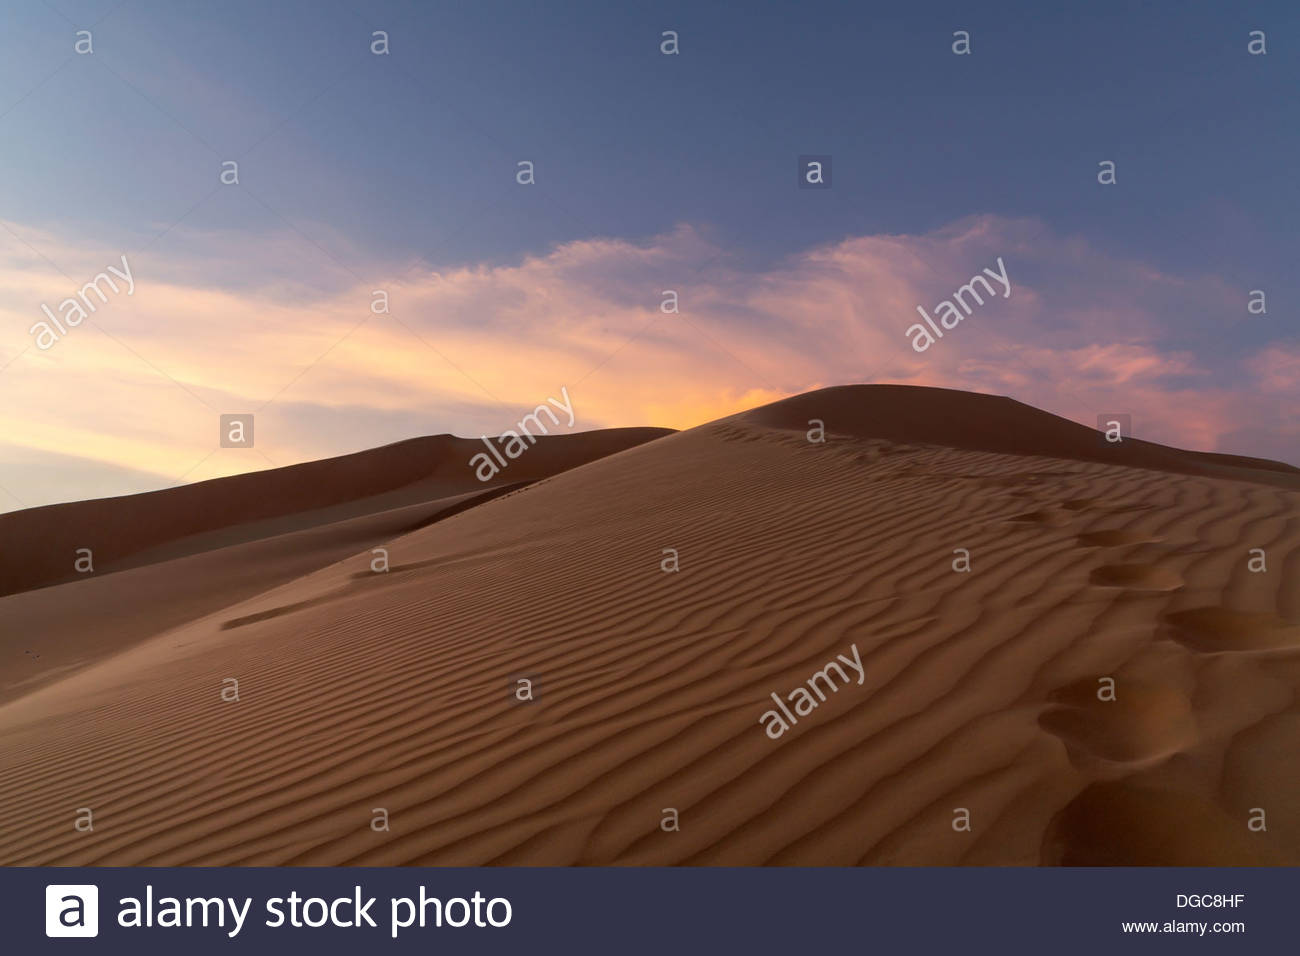 Sand dunes in desert at sunset, Adu Dhabi, United Arab Emirates - Stock Image